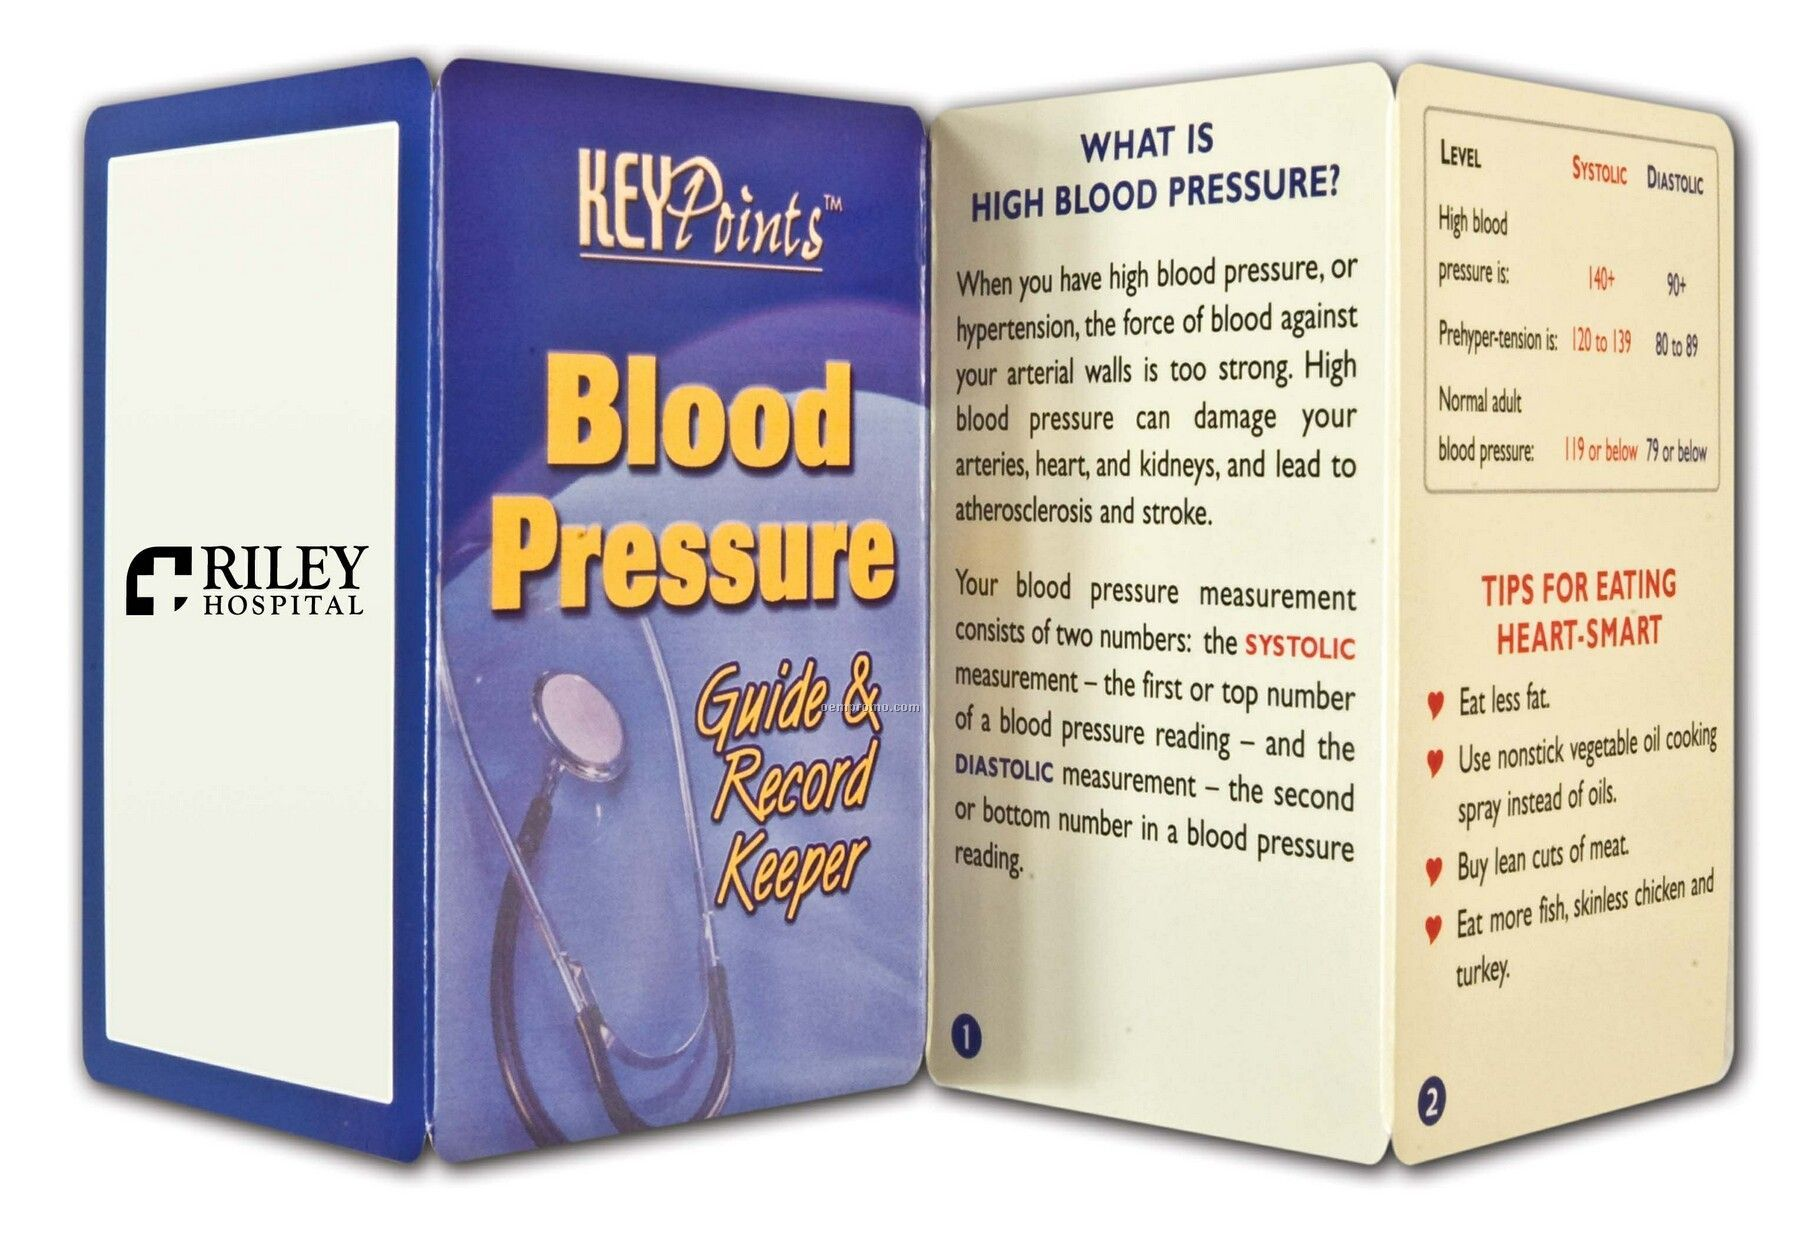 Pillowline Blood Pressure Guide & Record Keeper